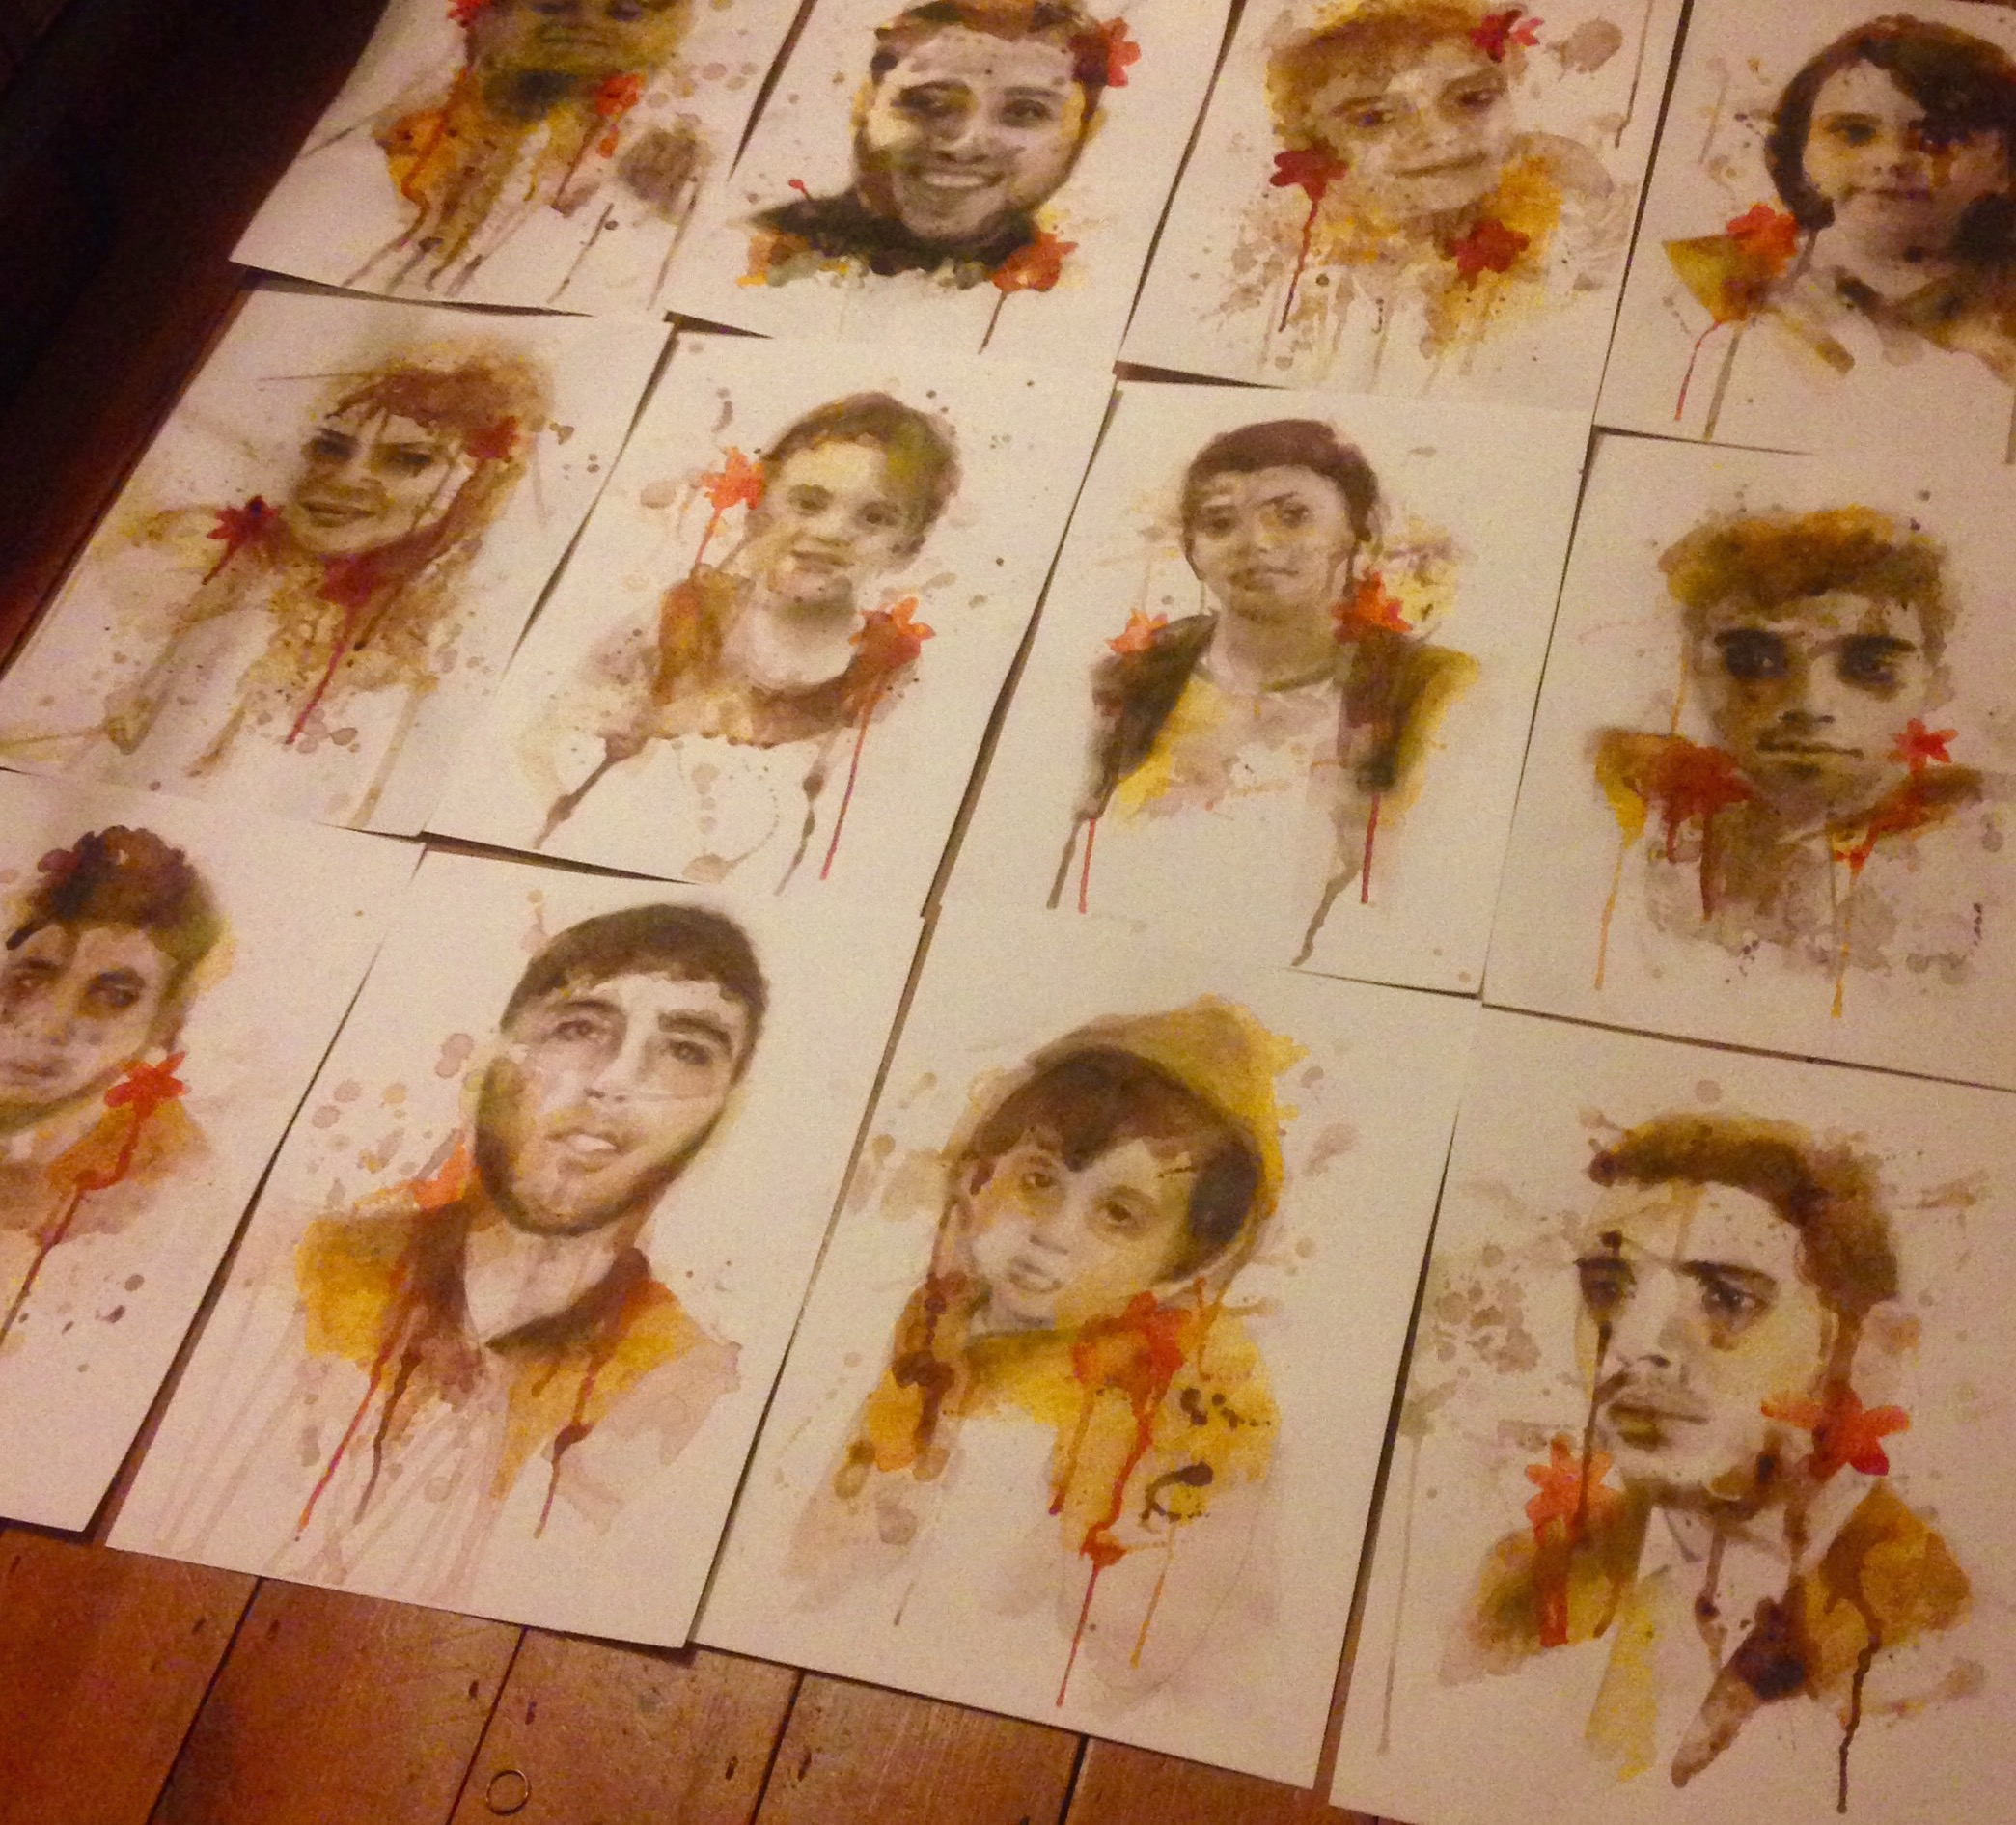 Portraits of Gaza's victims by Kerry Beall